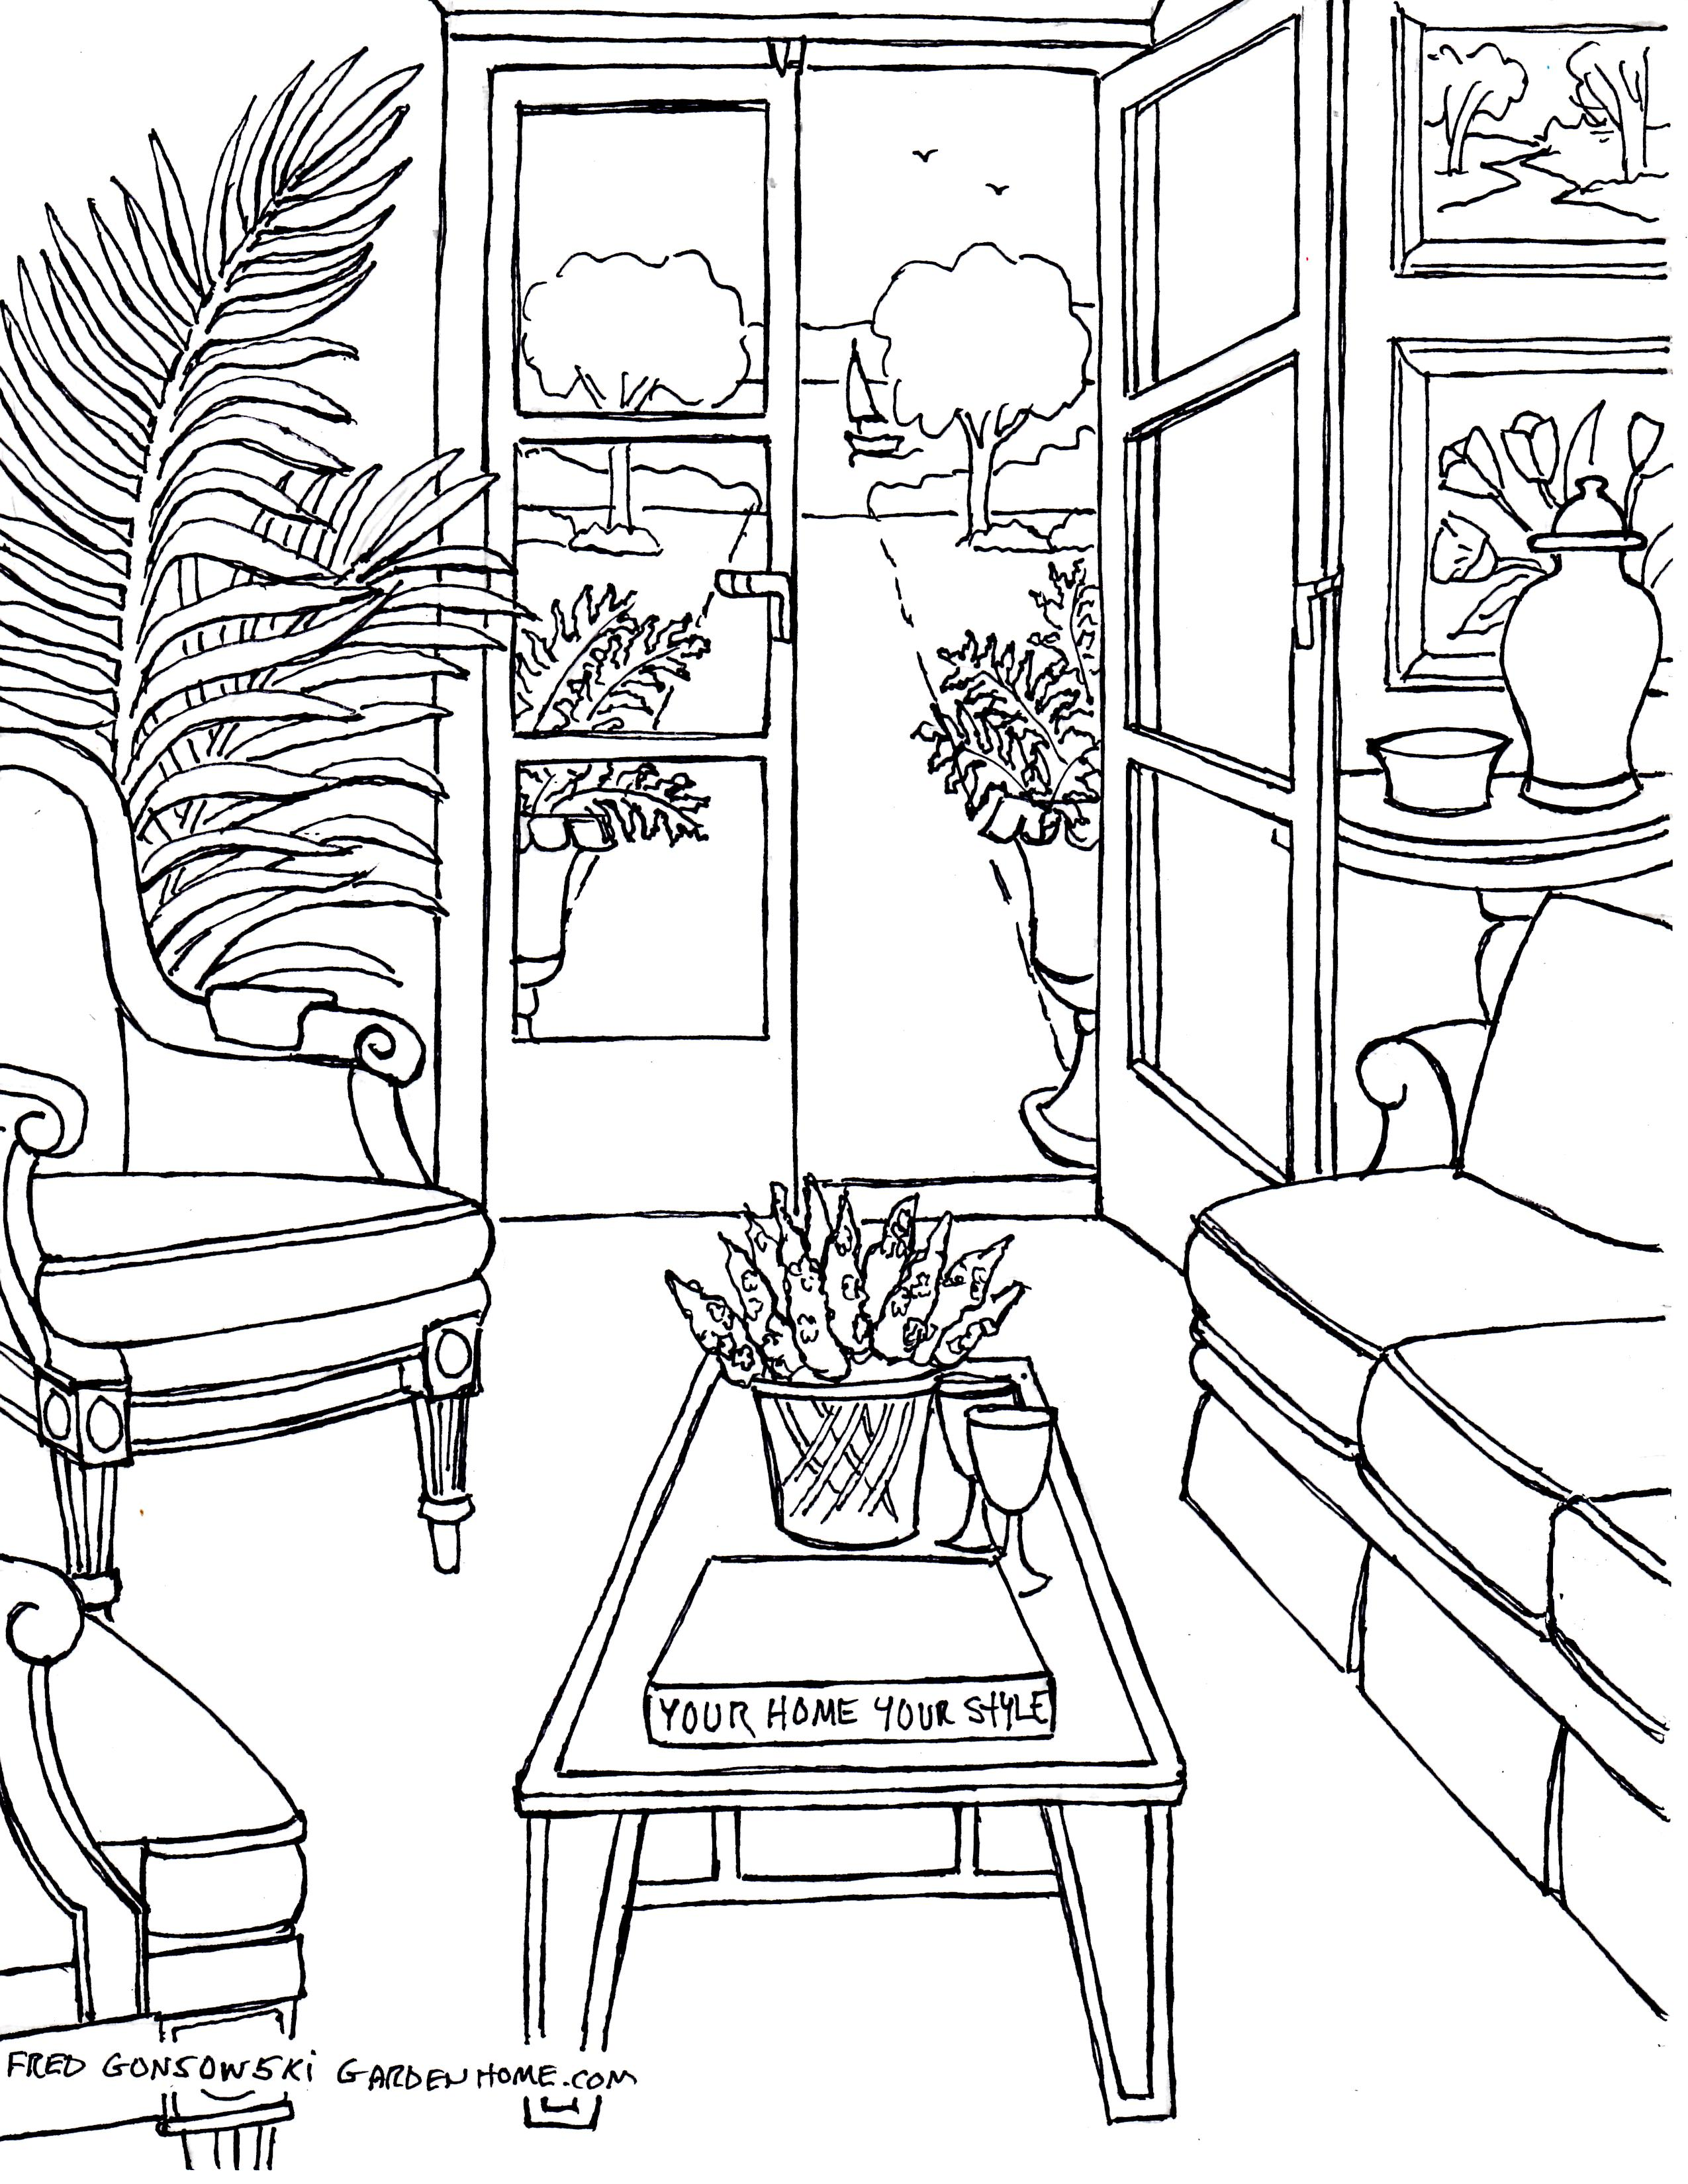 Living Room Sheet Preschool Coloring Pages